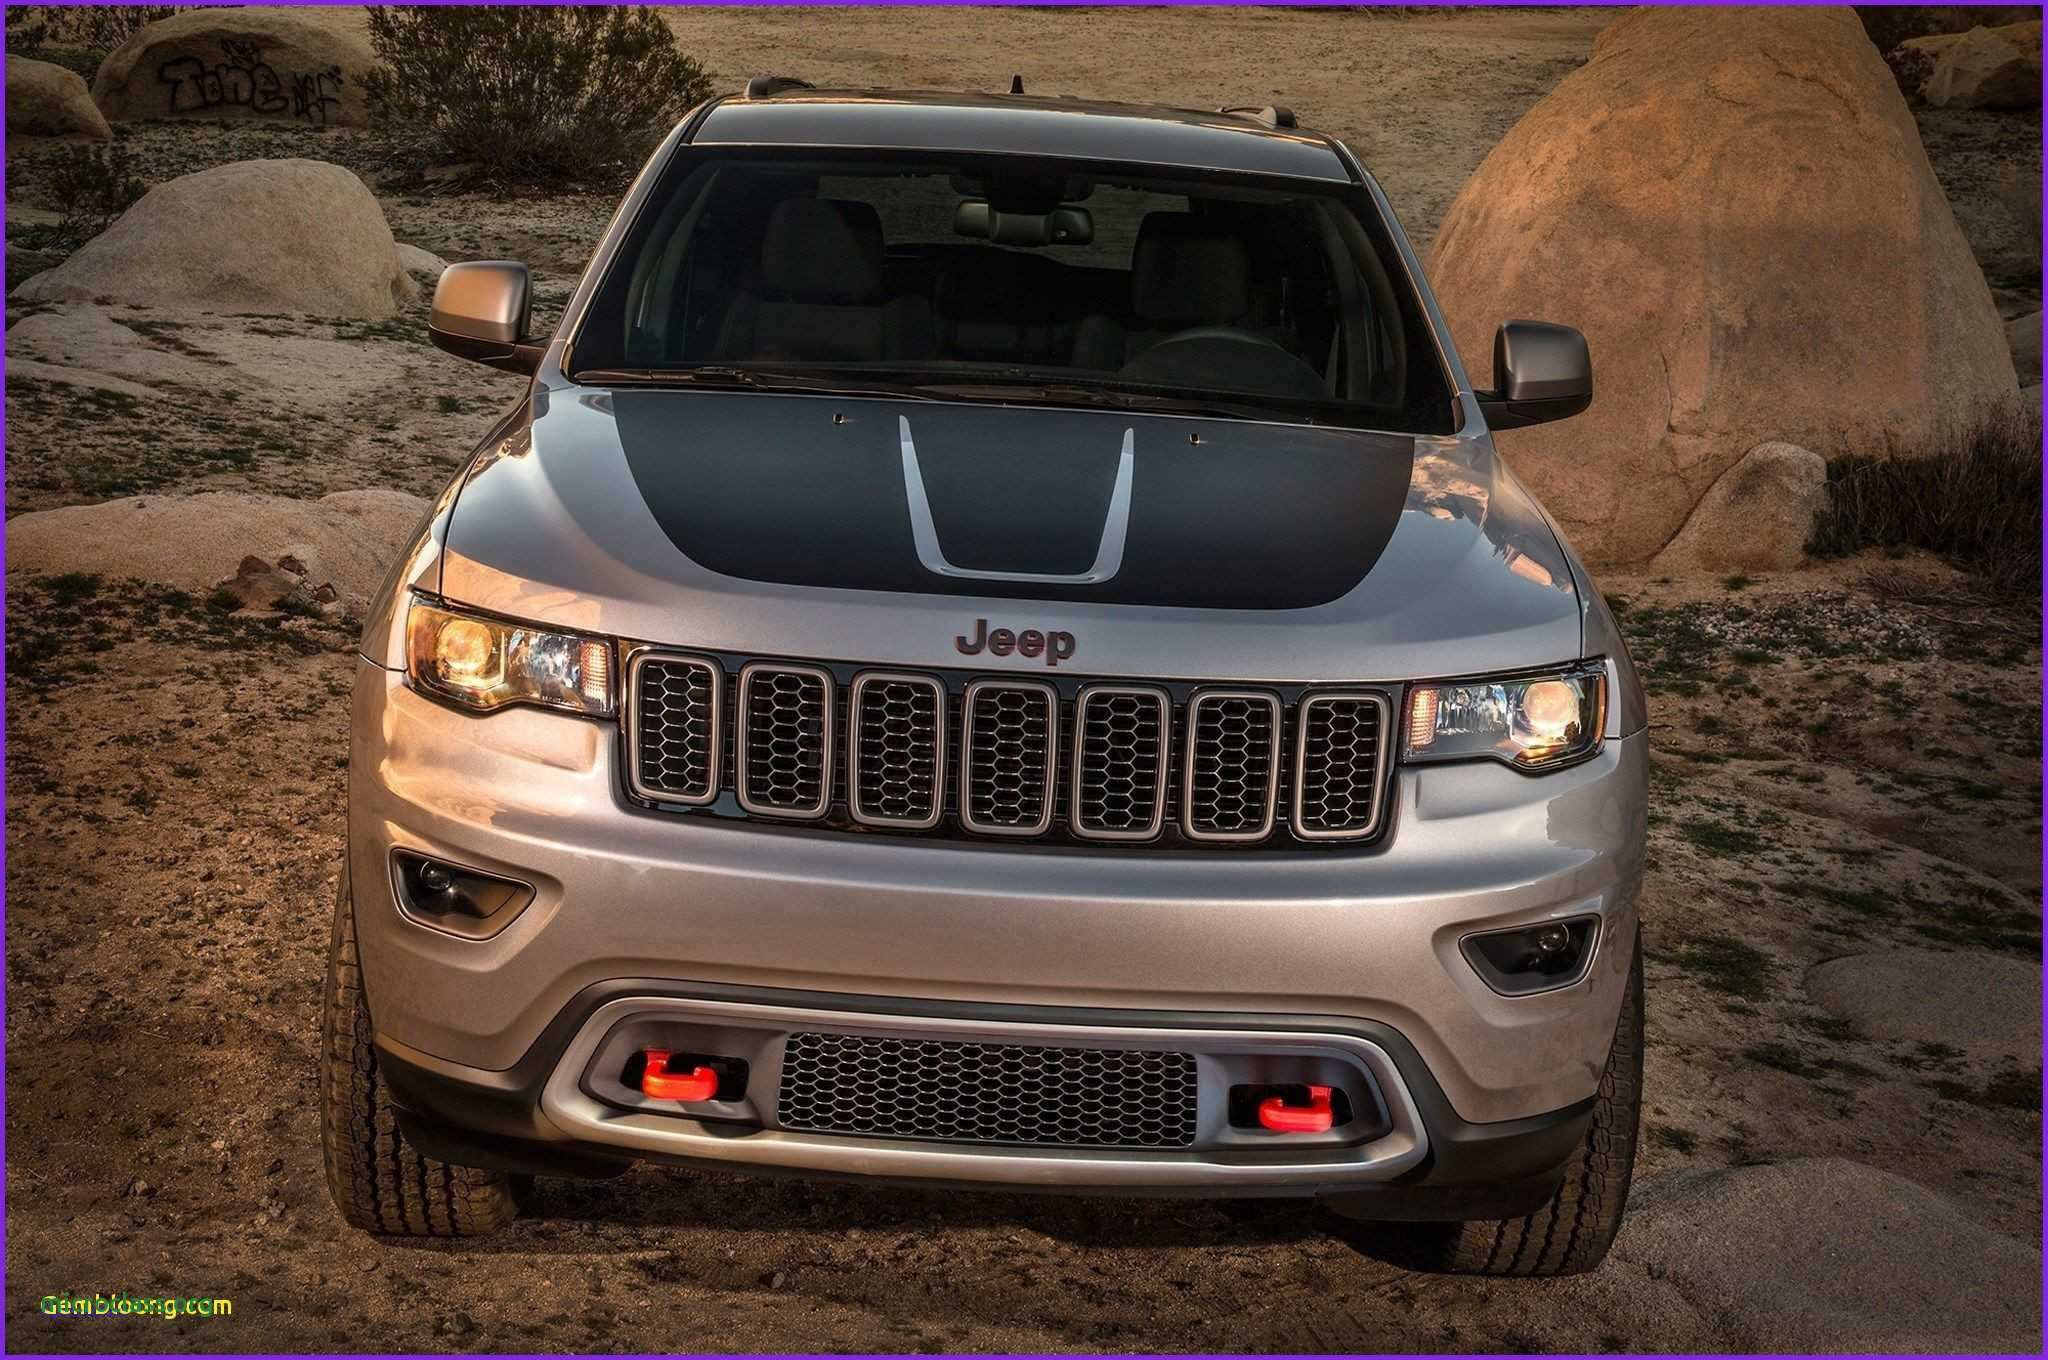 82 All New 2020 Jeep Grand Cherokee Srt8 New Concept